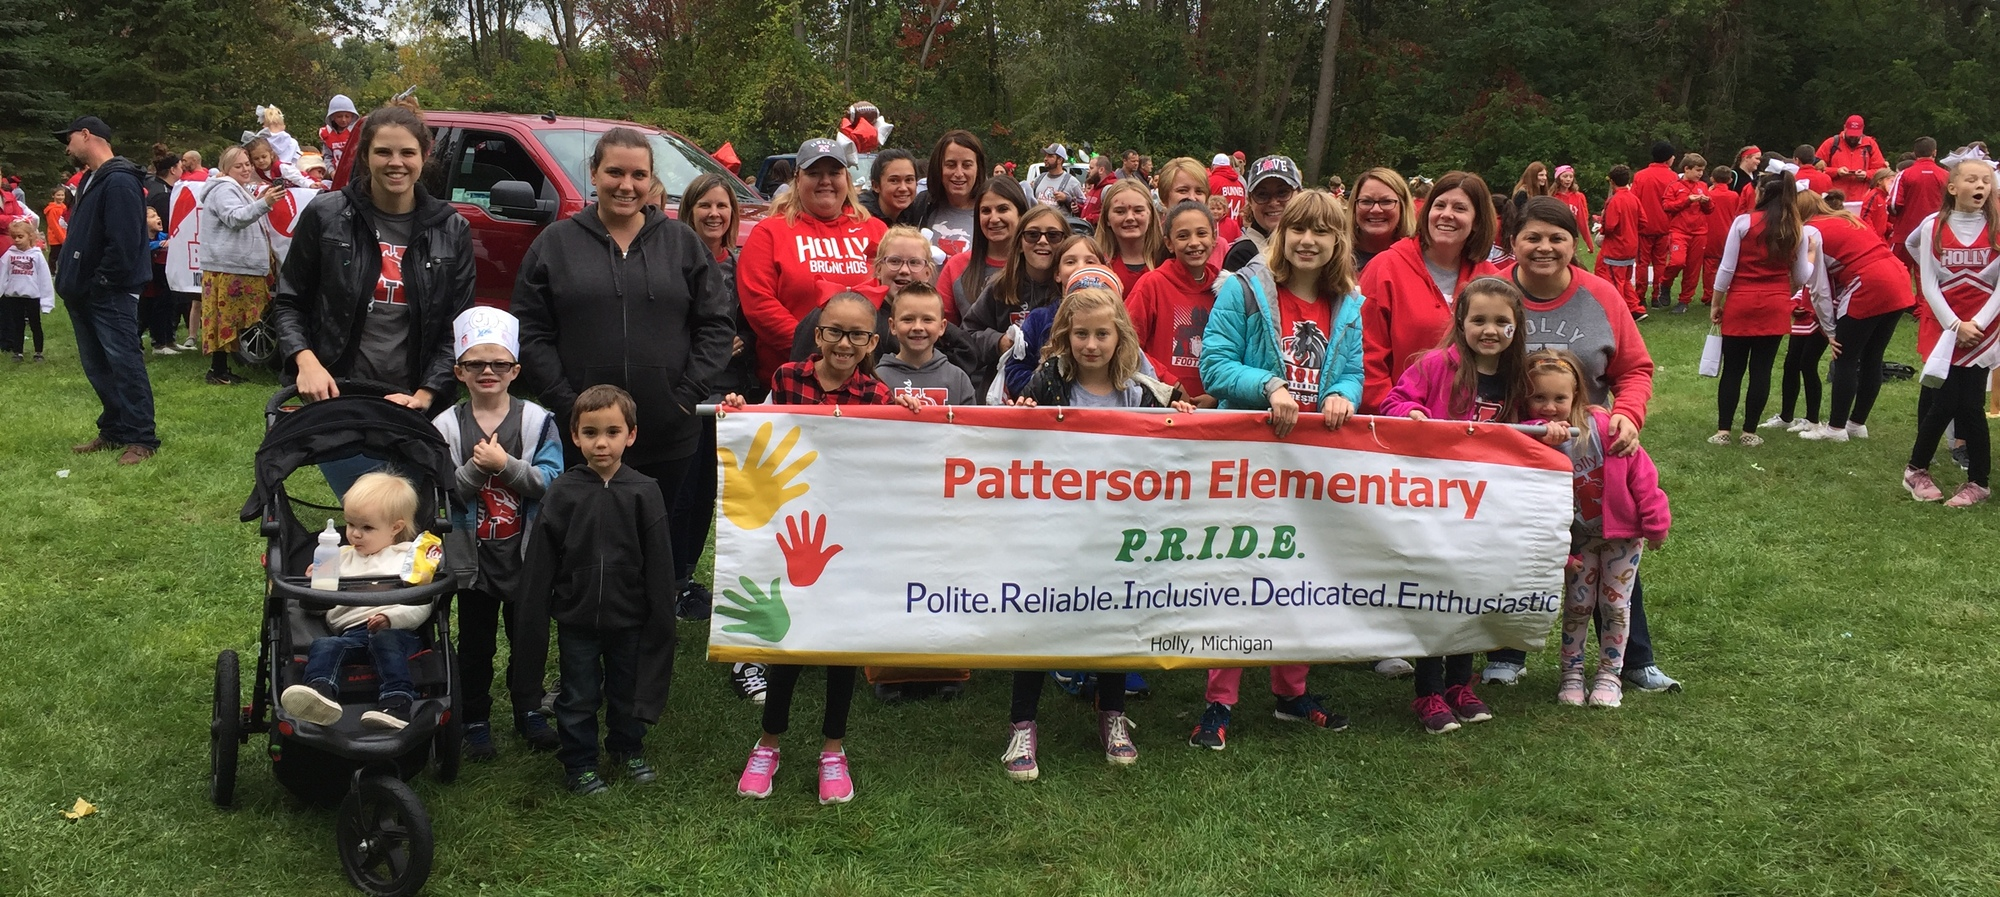 Patterson Pride banner with staff, students and parents